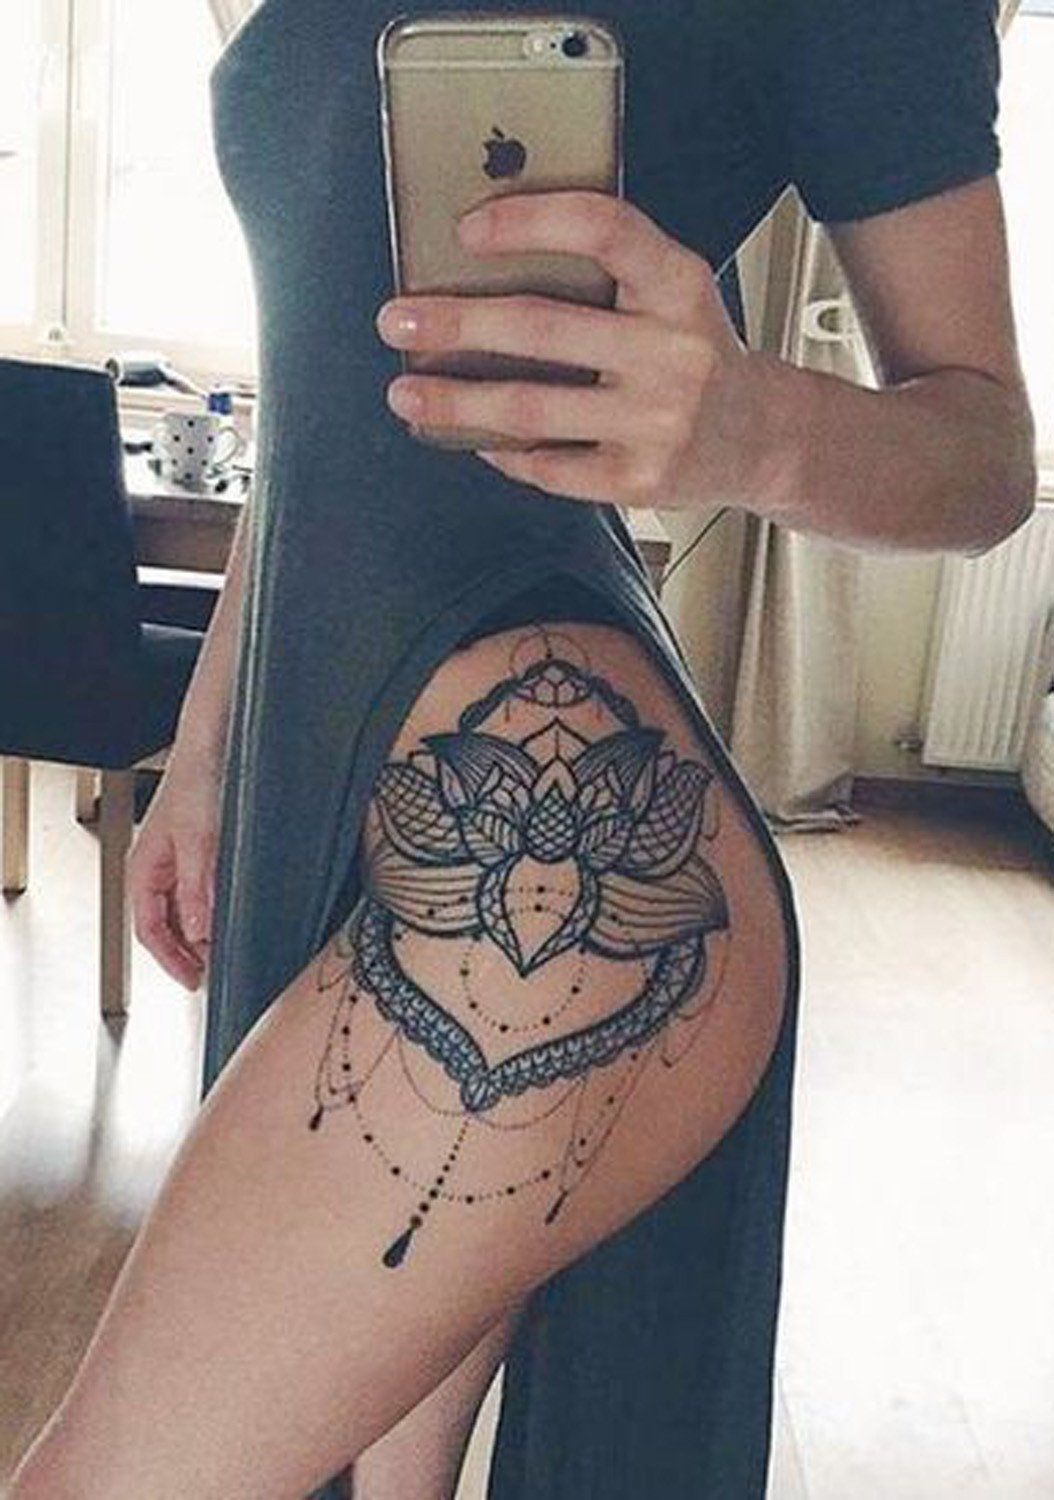 2017 01 small tattoo designs for women on foot - Lace Lotus Flower Mandala Chandelier Hip Tattoo Placement Ideas For Women Black Henna Leg Side